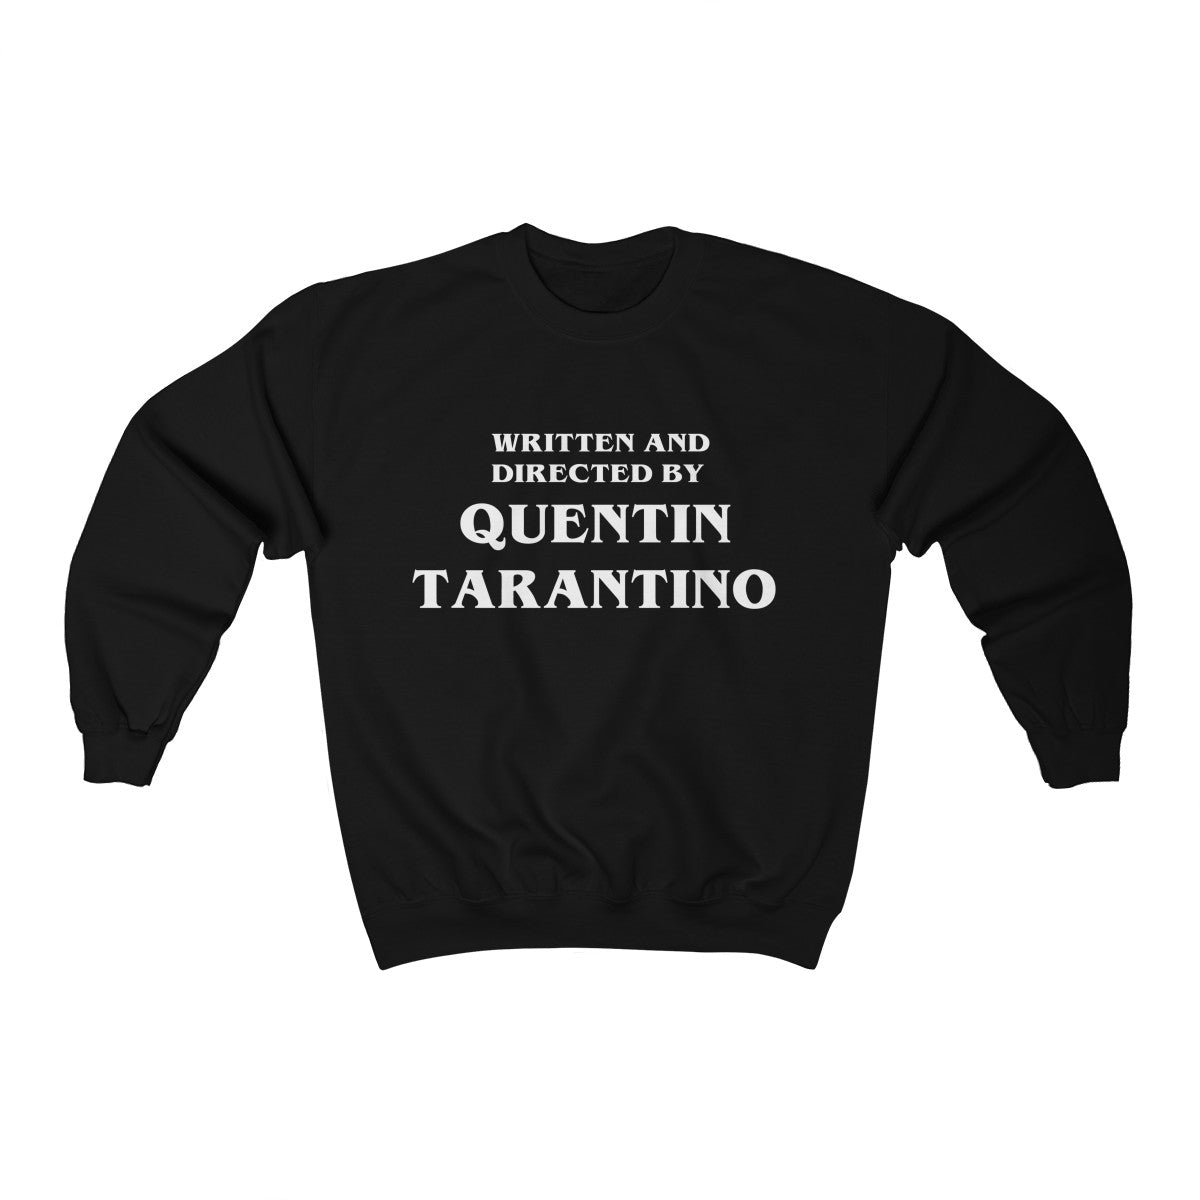 Black Vintage Kill Bill Written and Directed by Quentin Tarantino Crewneck Sweater